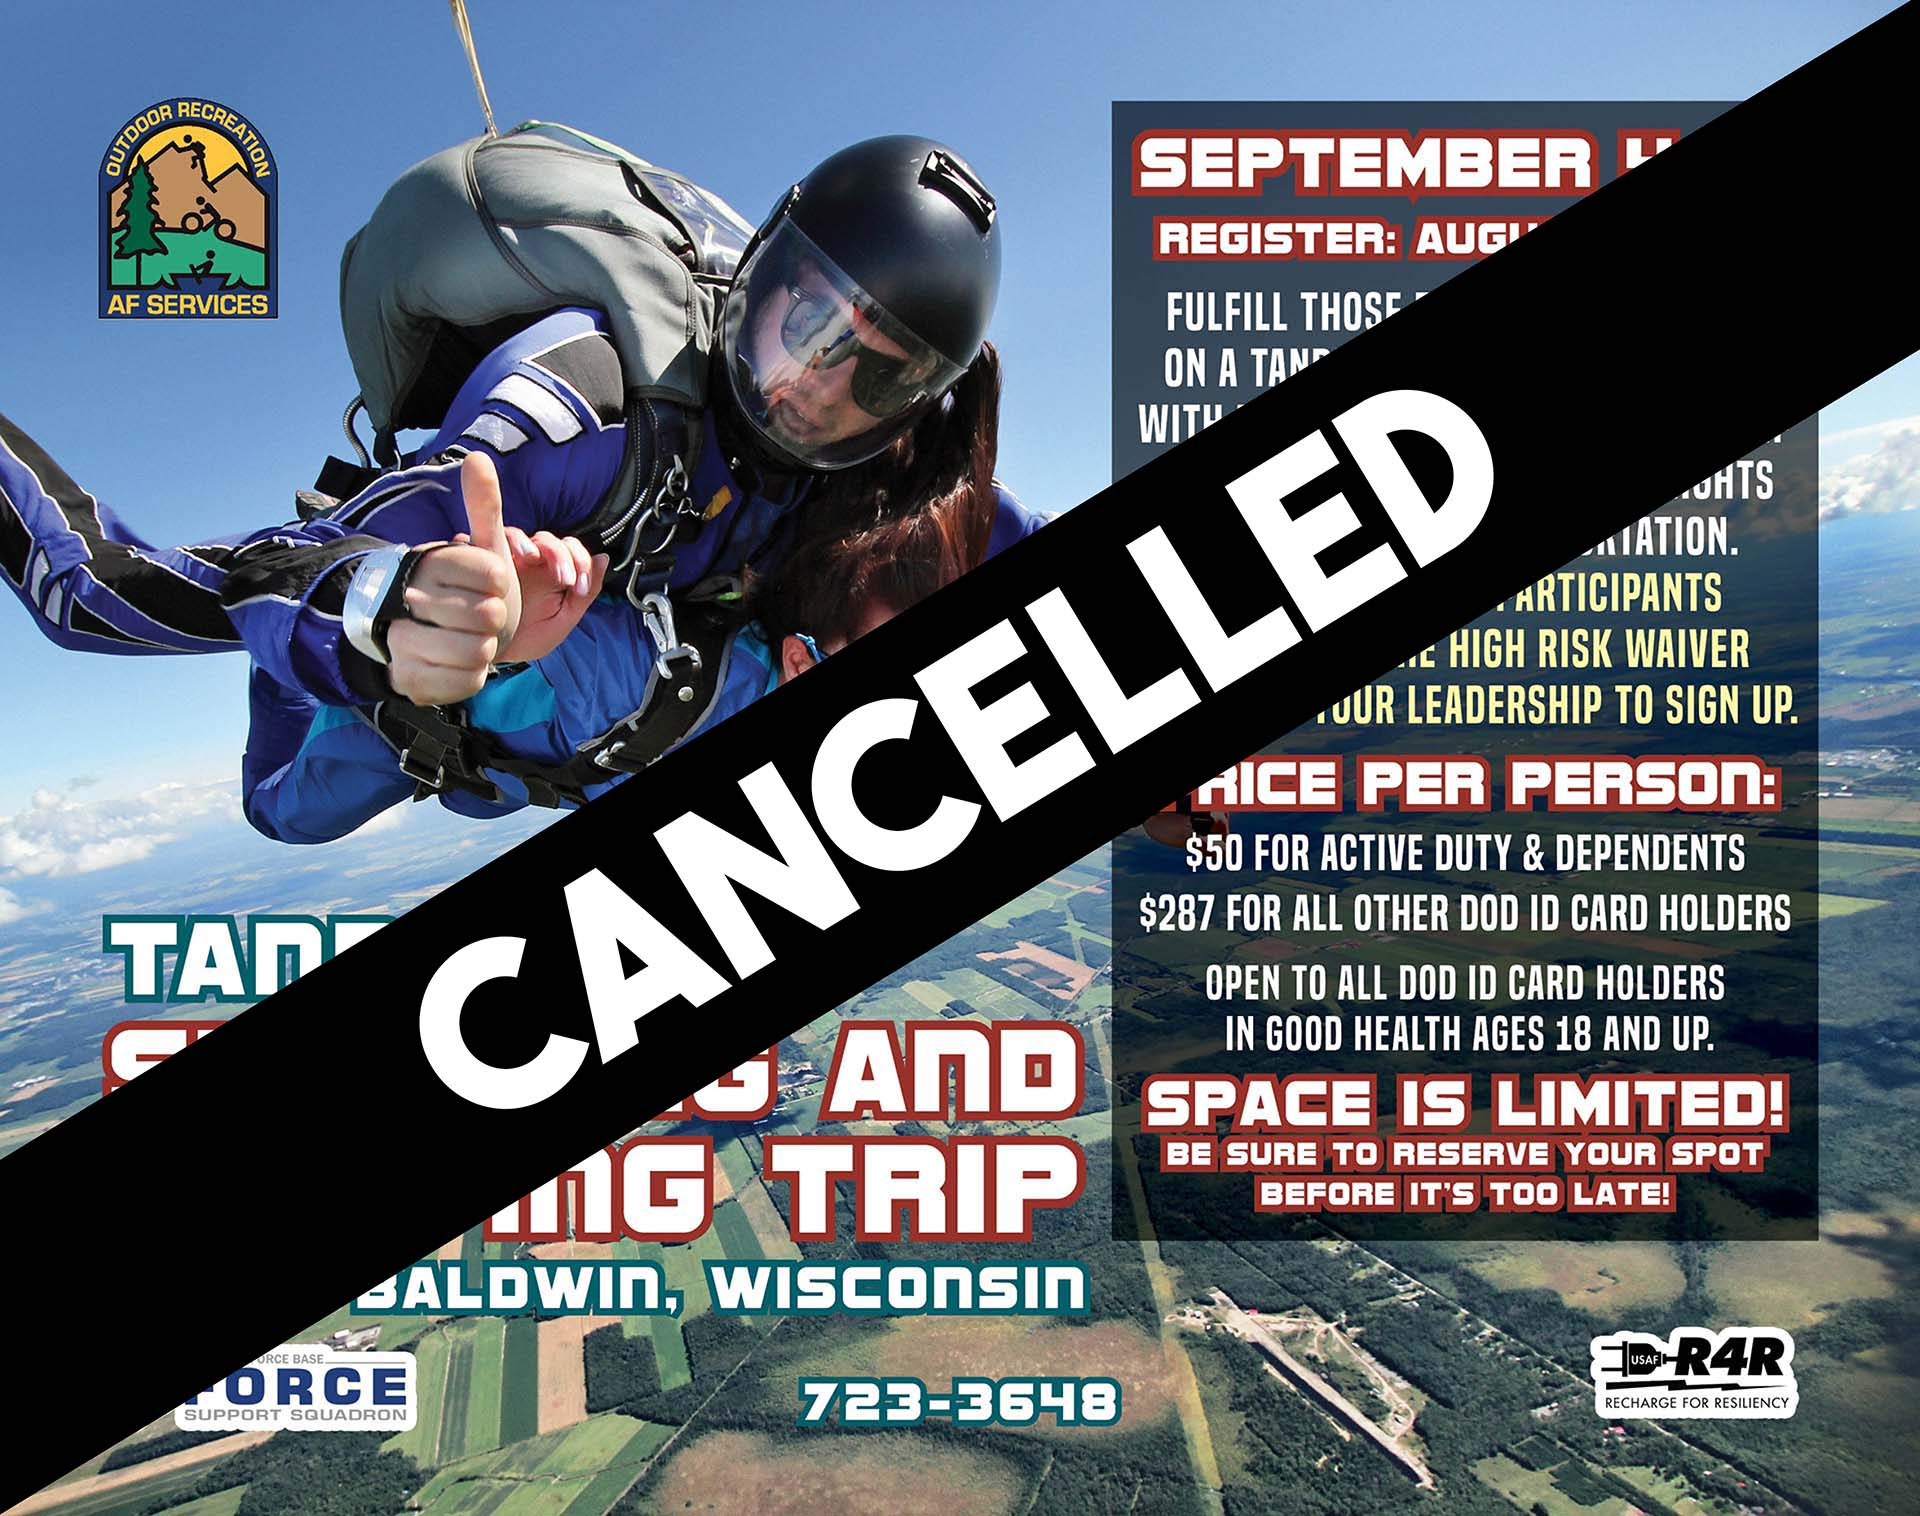 Canceled: Skydiving & Camping Trip to Baldwin, WI